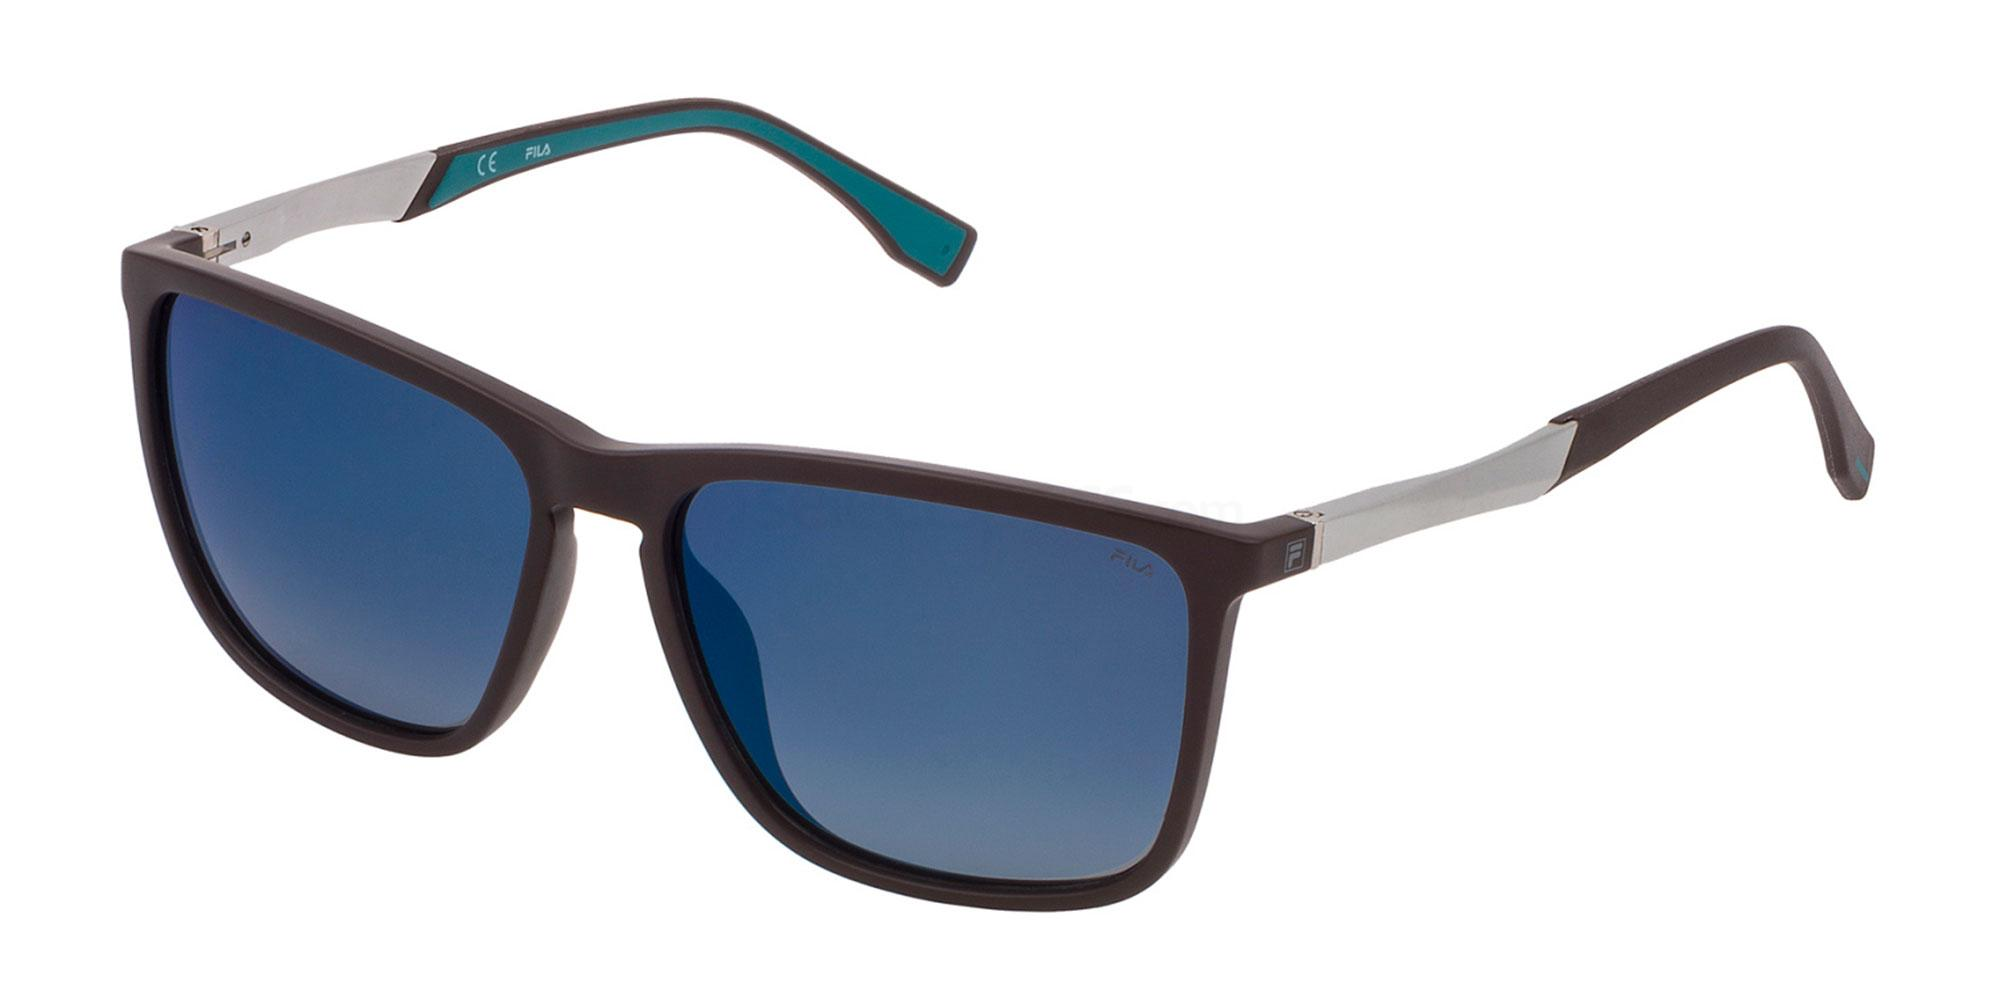 6XKB SF9248 Sunglasses, Fila